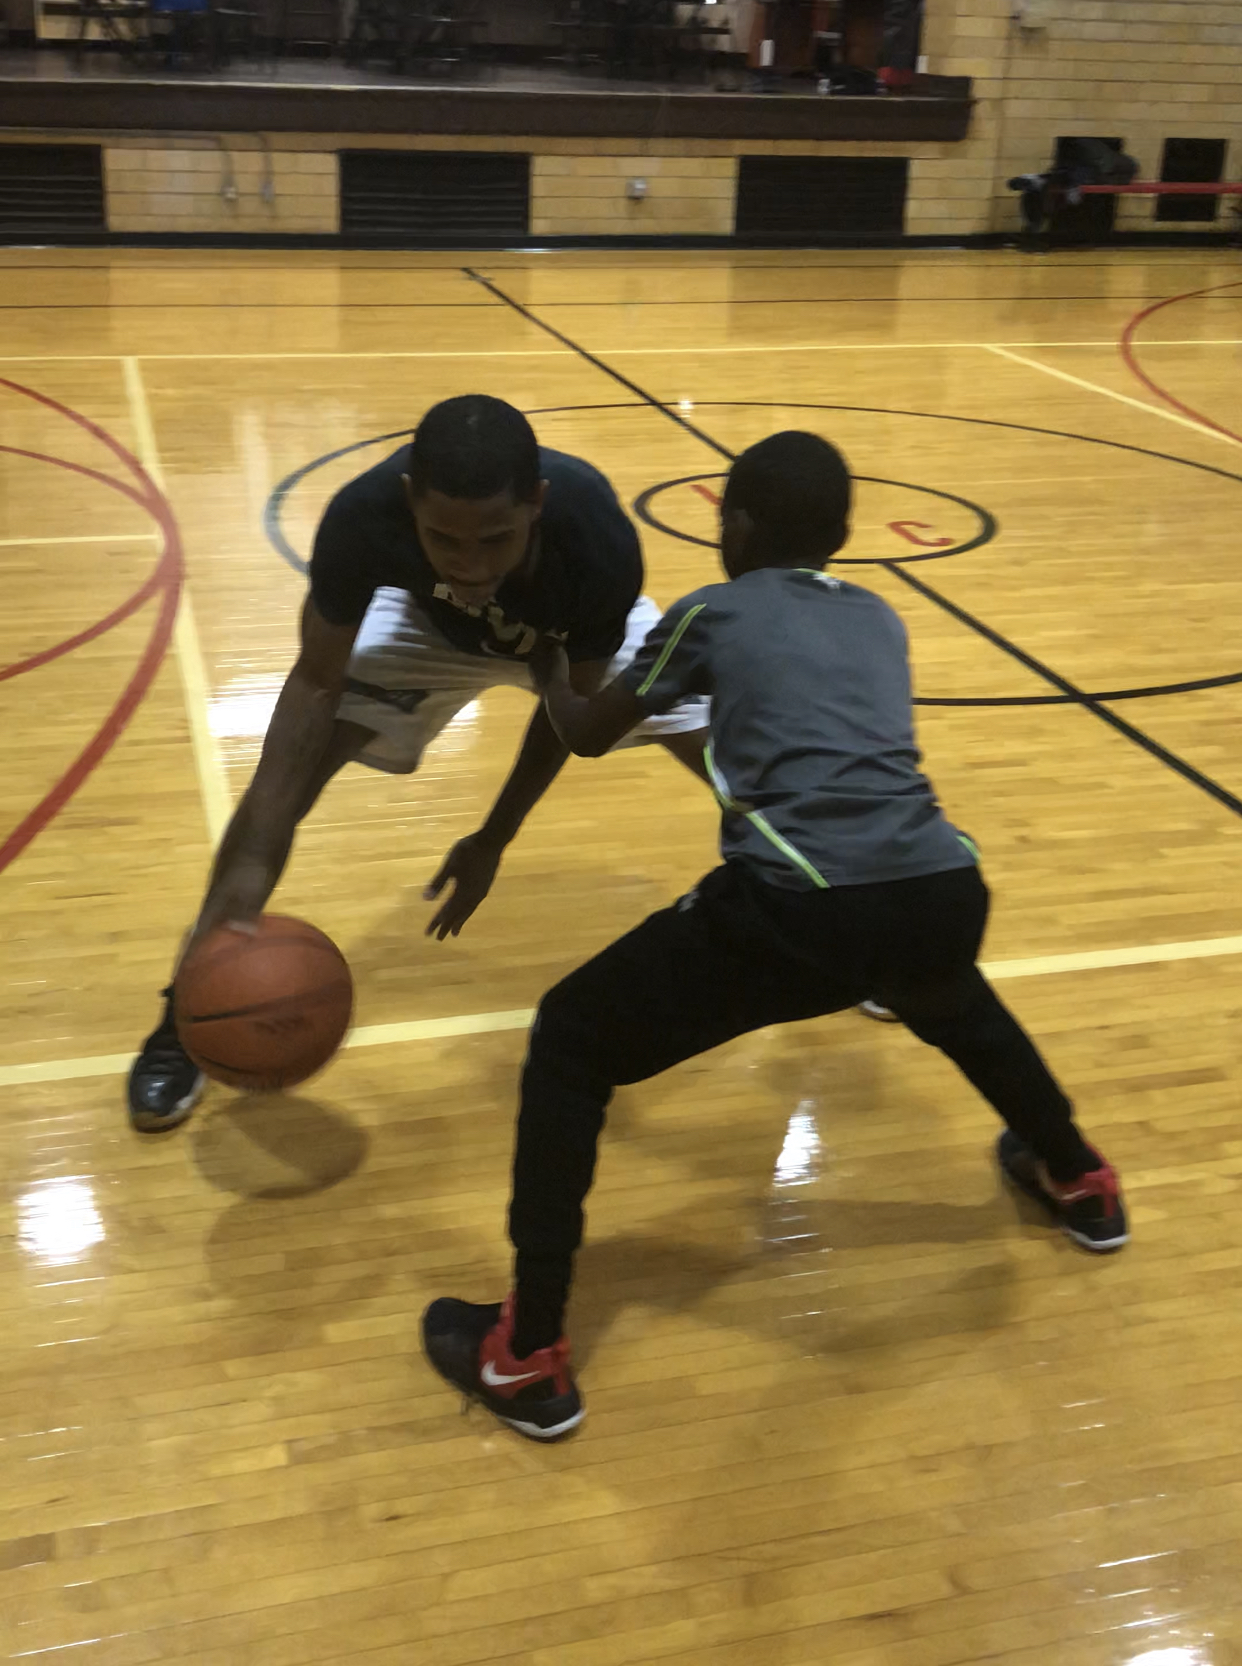 Stationary ball handling w/ contact